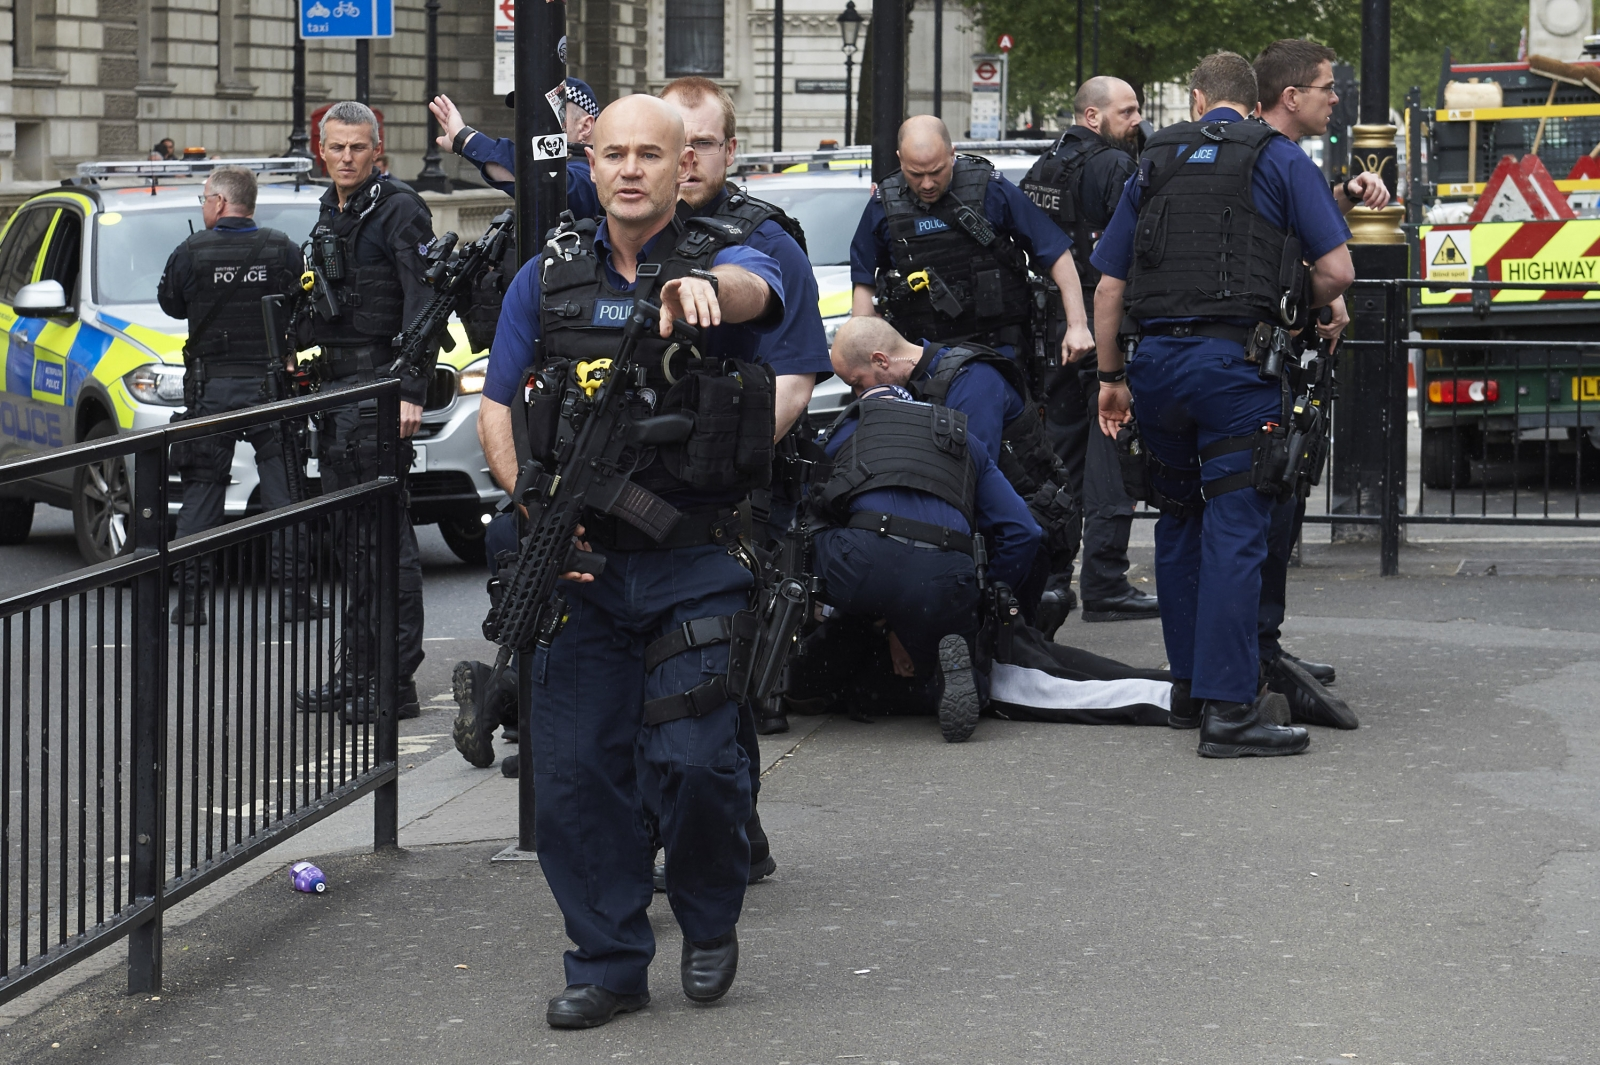 British authorities arrest knife-wielding man near Westminster